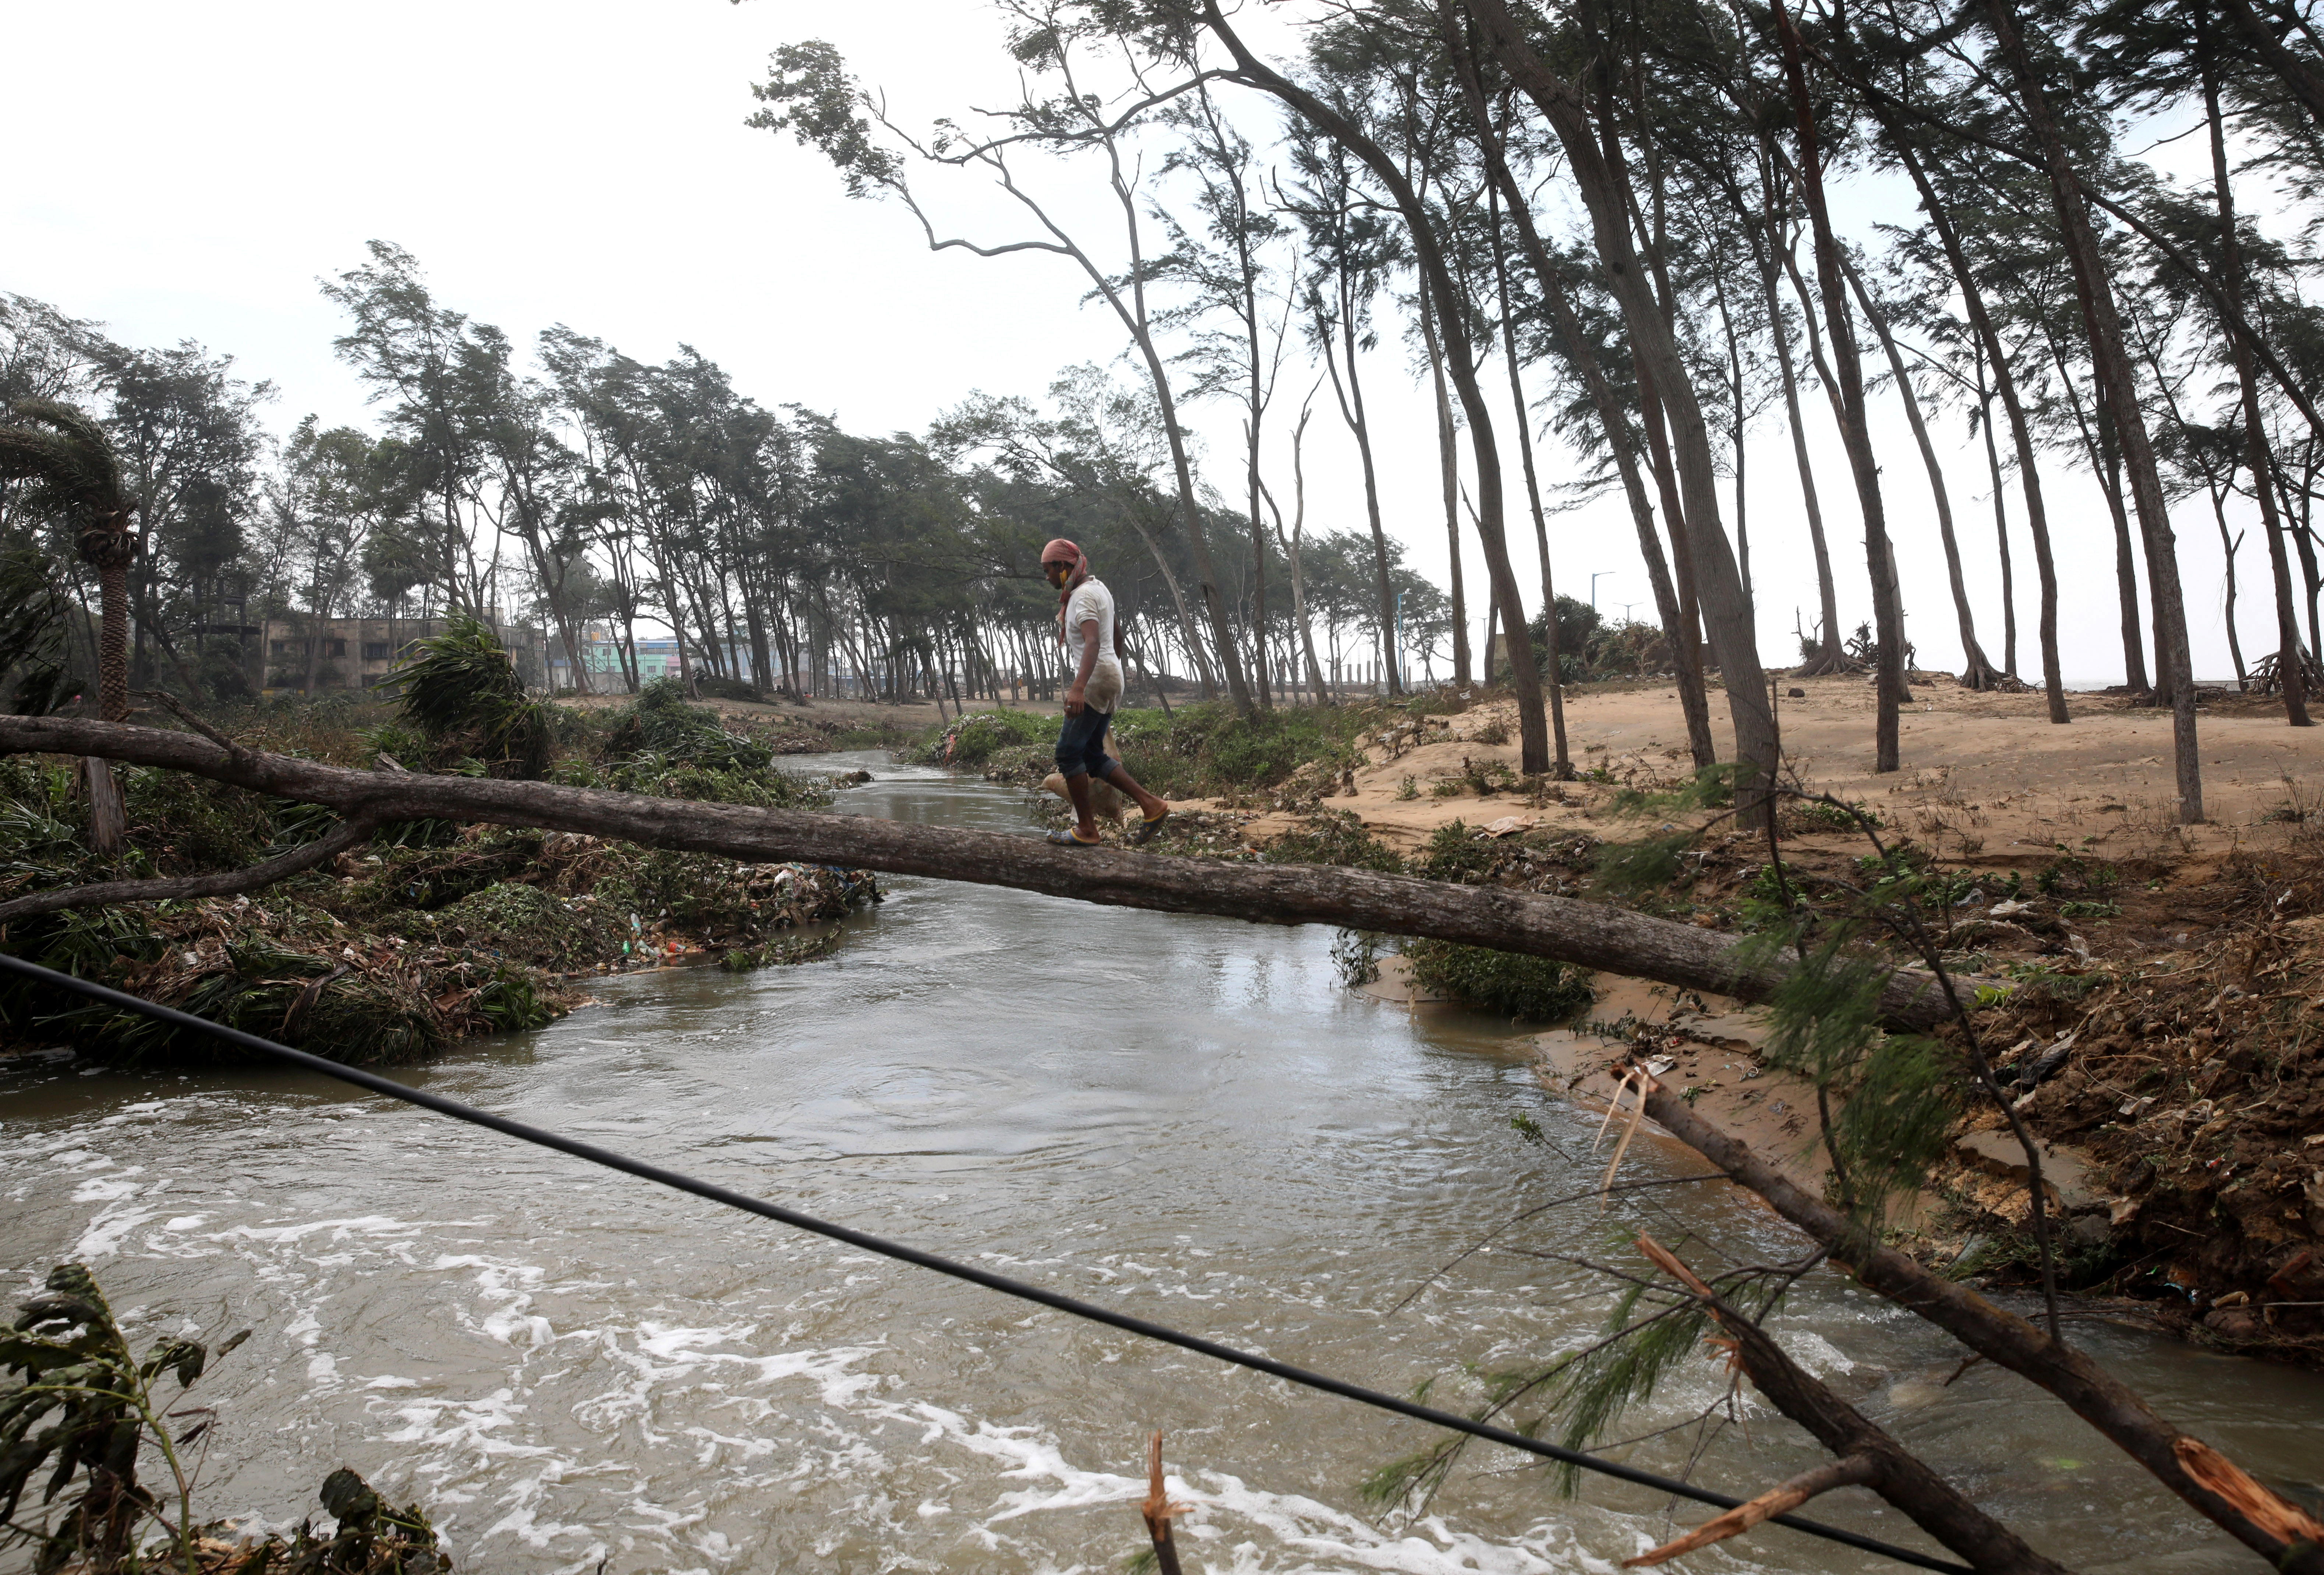 A man crosses a canal on a fallen tree following Cyclone Yaas in Digha, Purba Medinipur district in the eastern state of West Bengal, India, May 27, 2021. REUTERS/Rupak De Chowdhuri